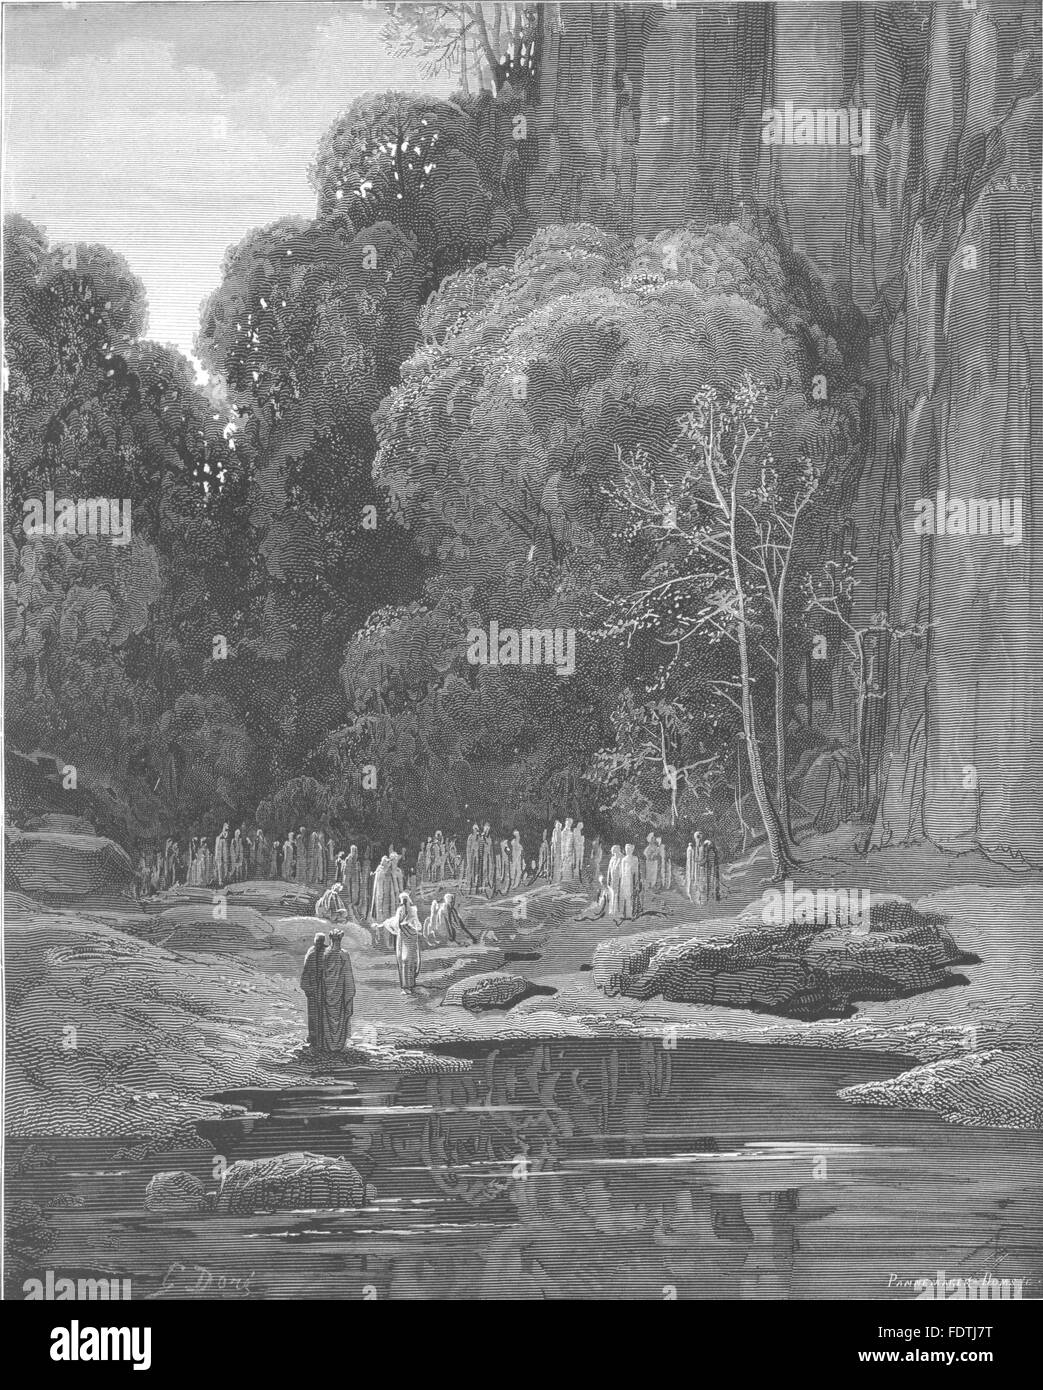 DANTE:Exclaim'd Bard,Throng around us;petition thee,they come Go therefore, 1893 - Stock Image